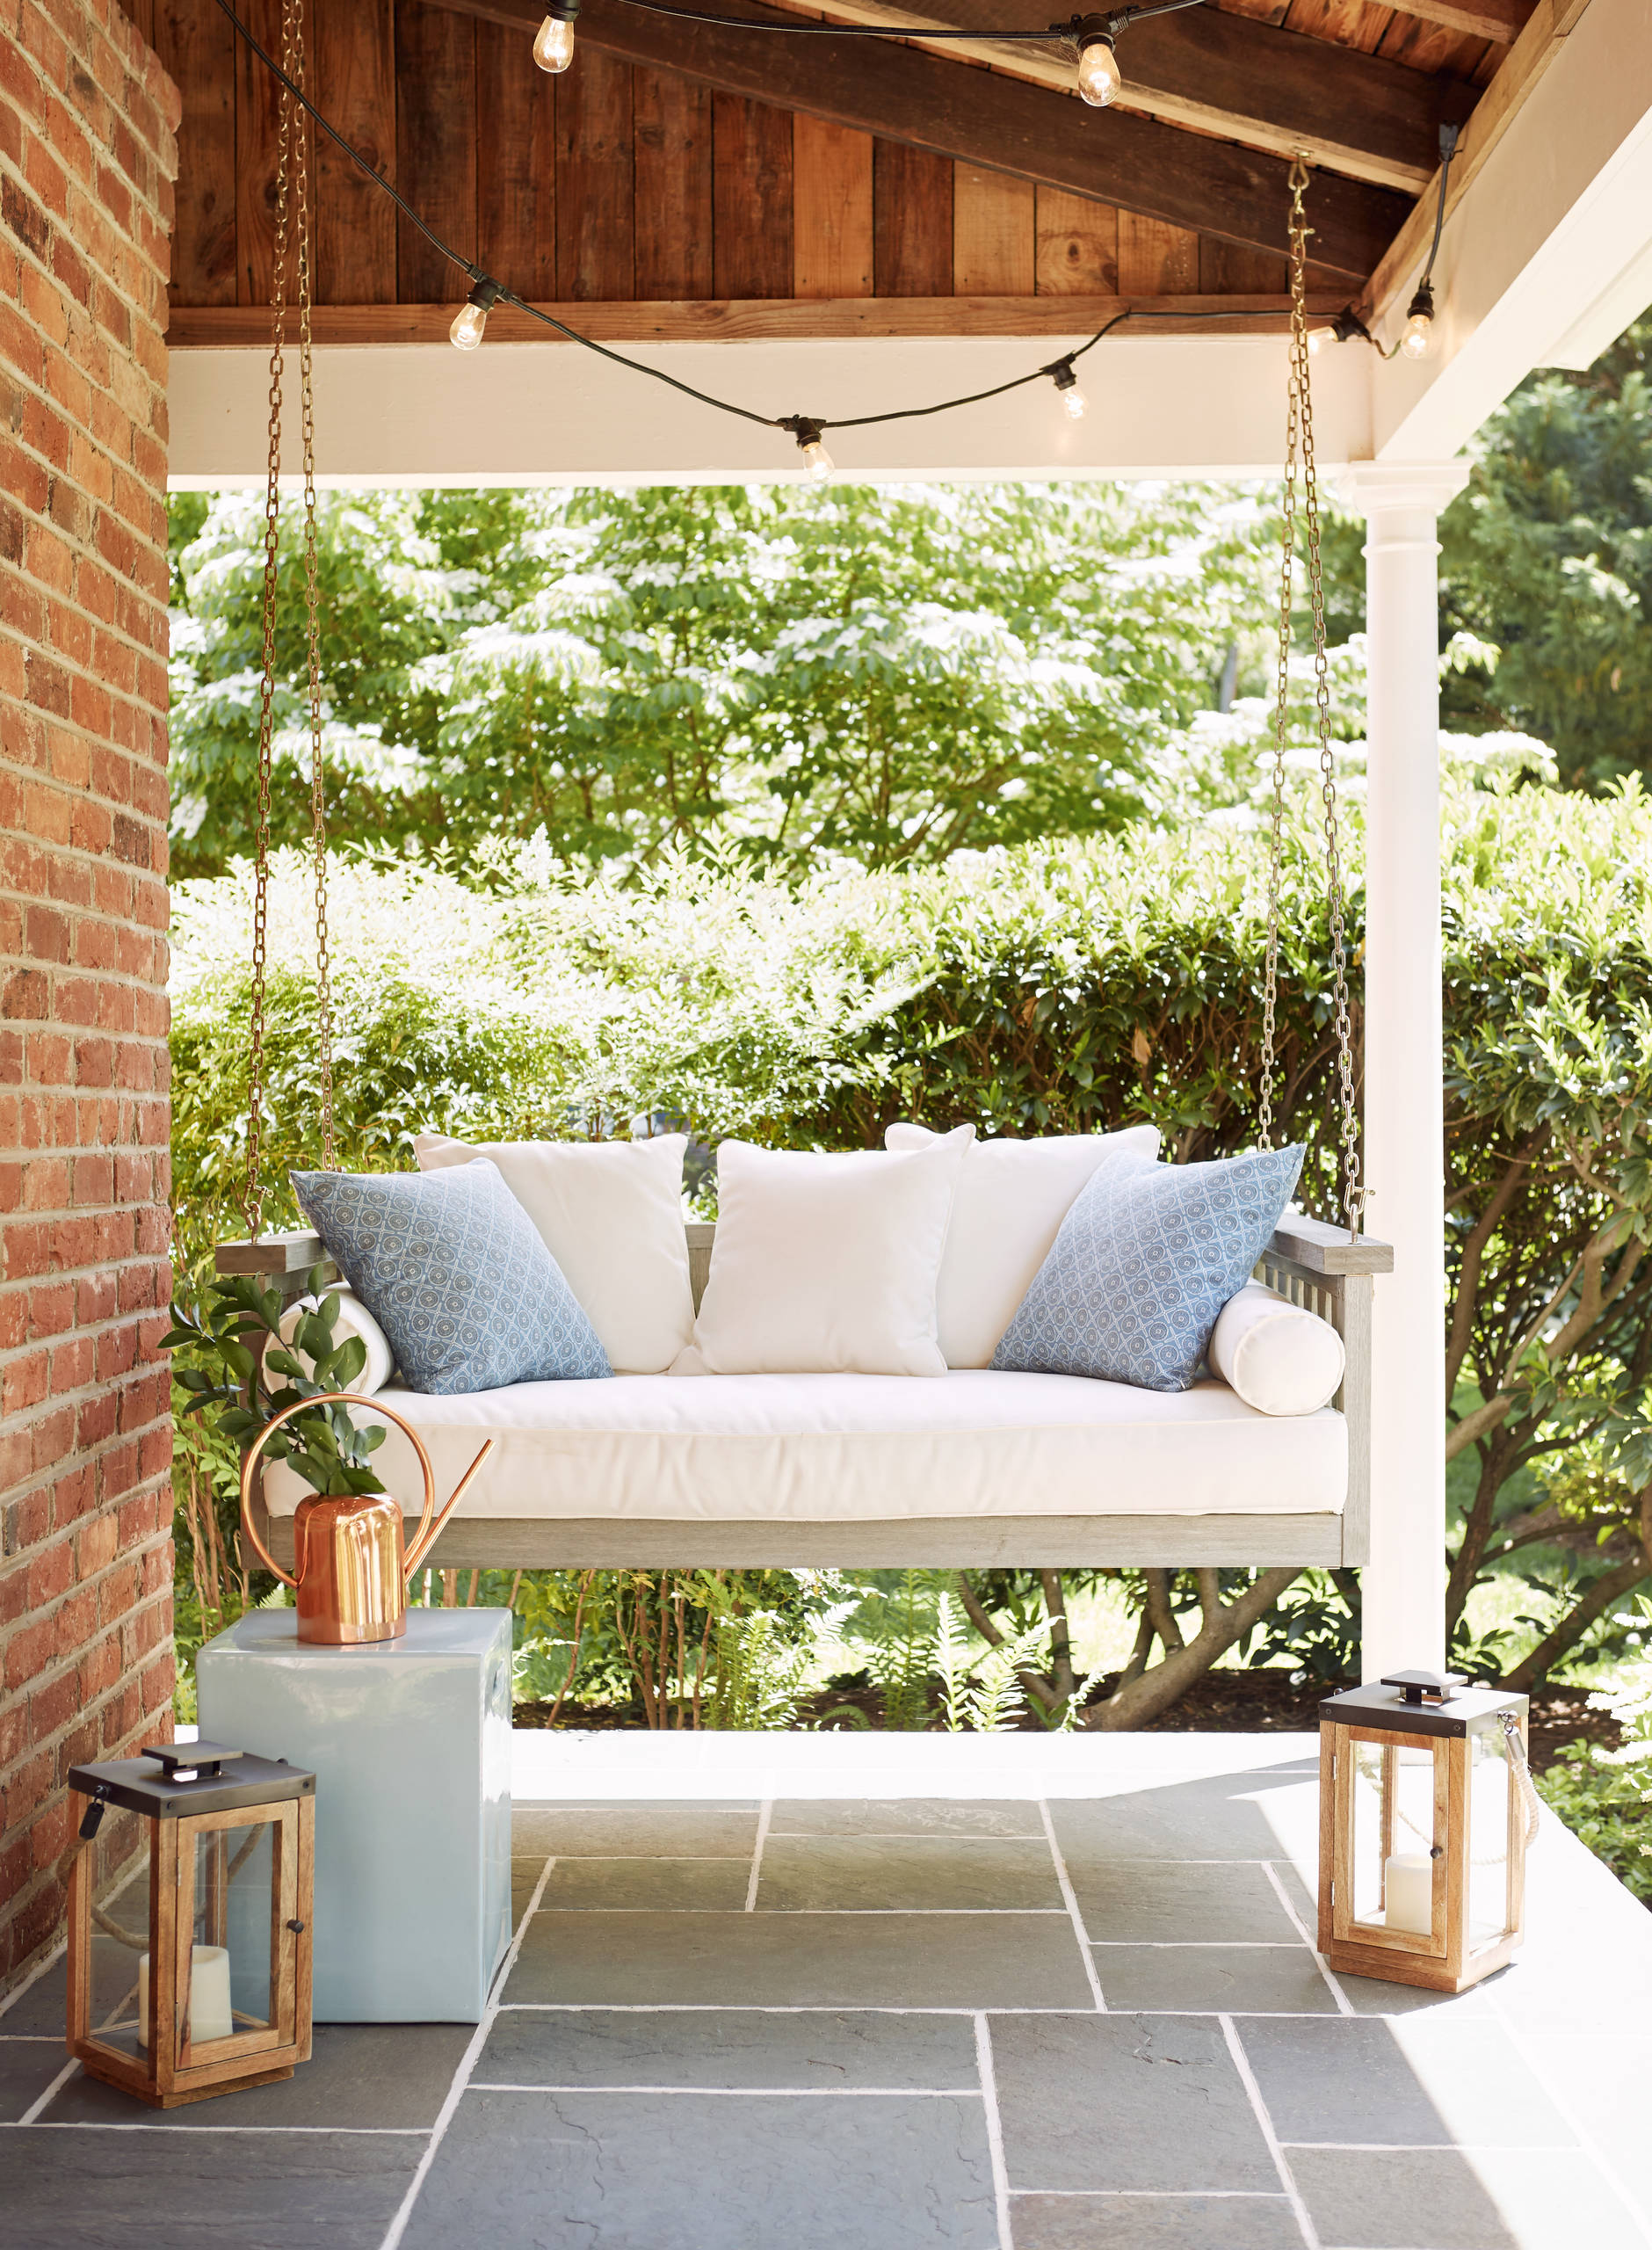 75 beautiful any patio pictures ideas